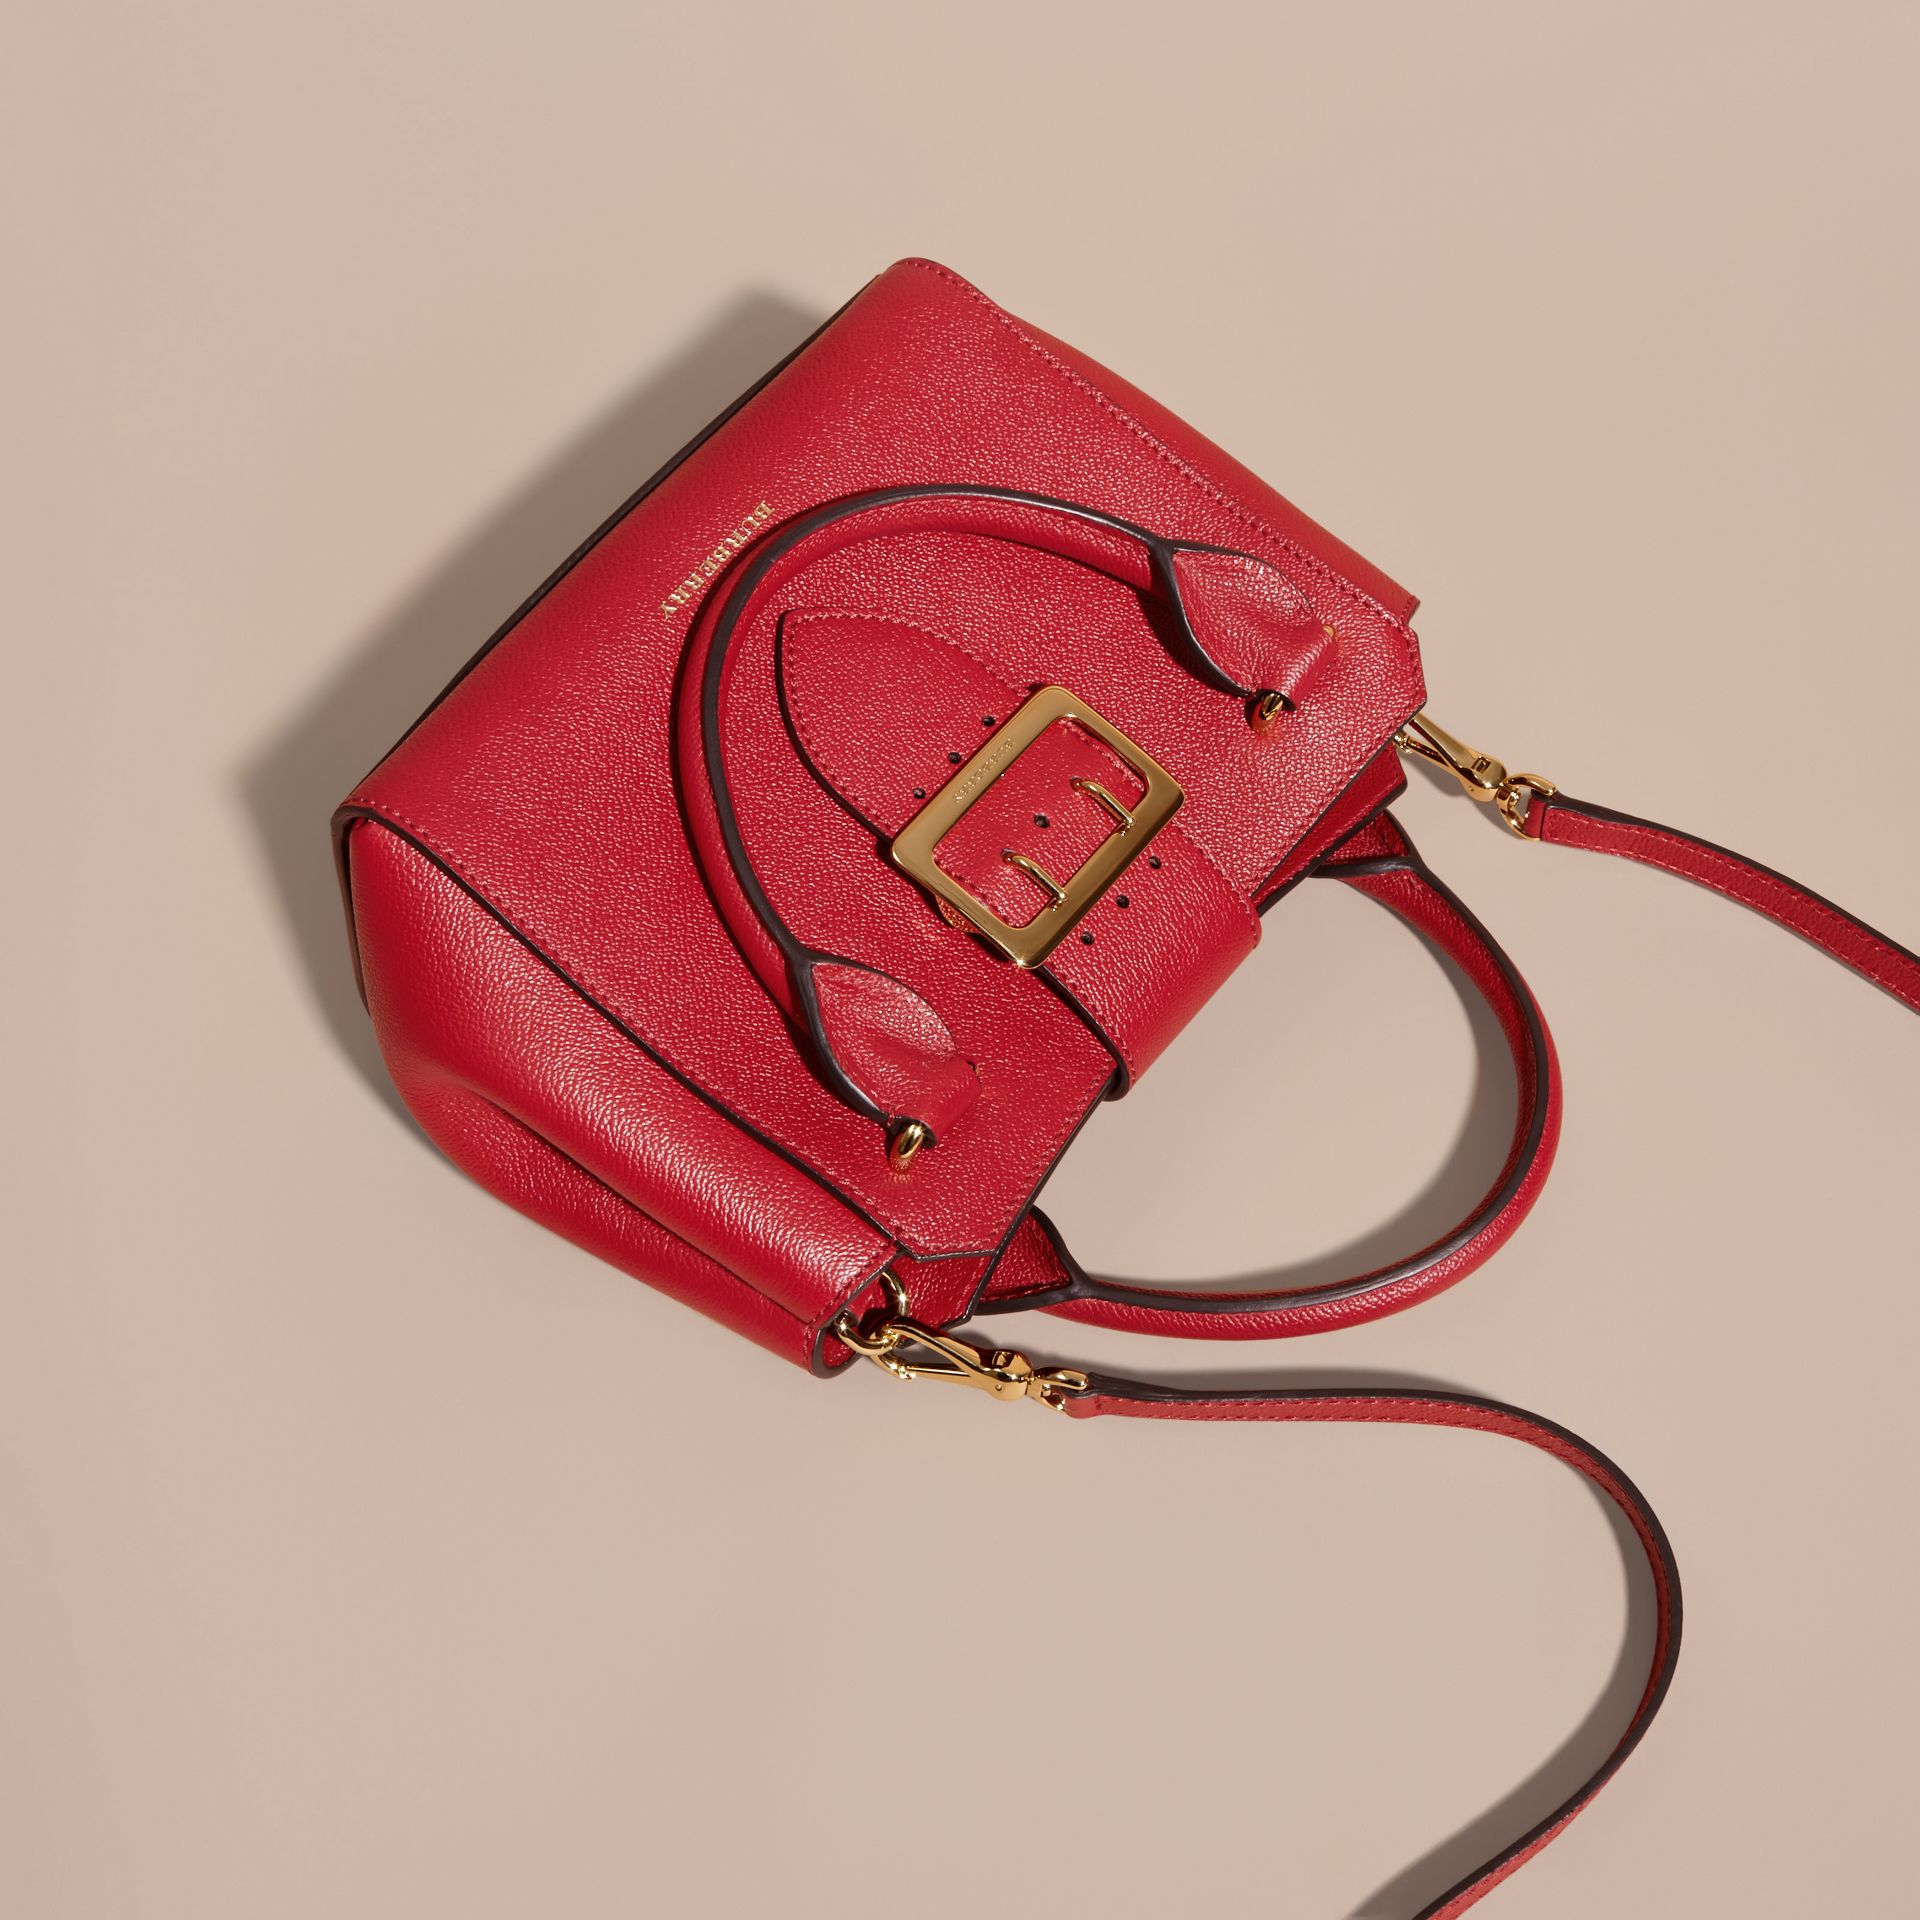 Parade red The Small Buckle Tote in Grainy Leather Parade Red - gallery image 3